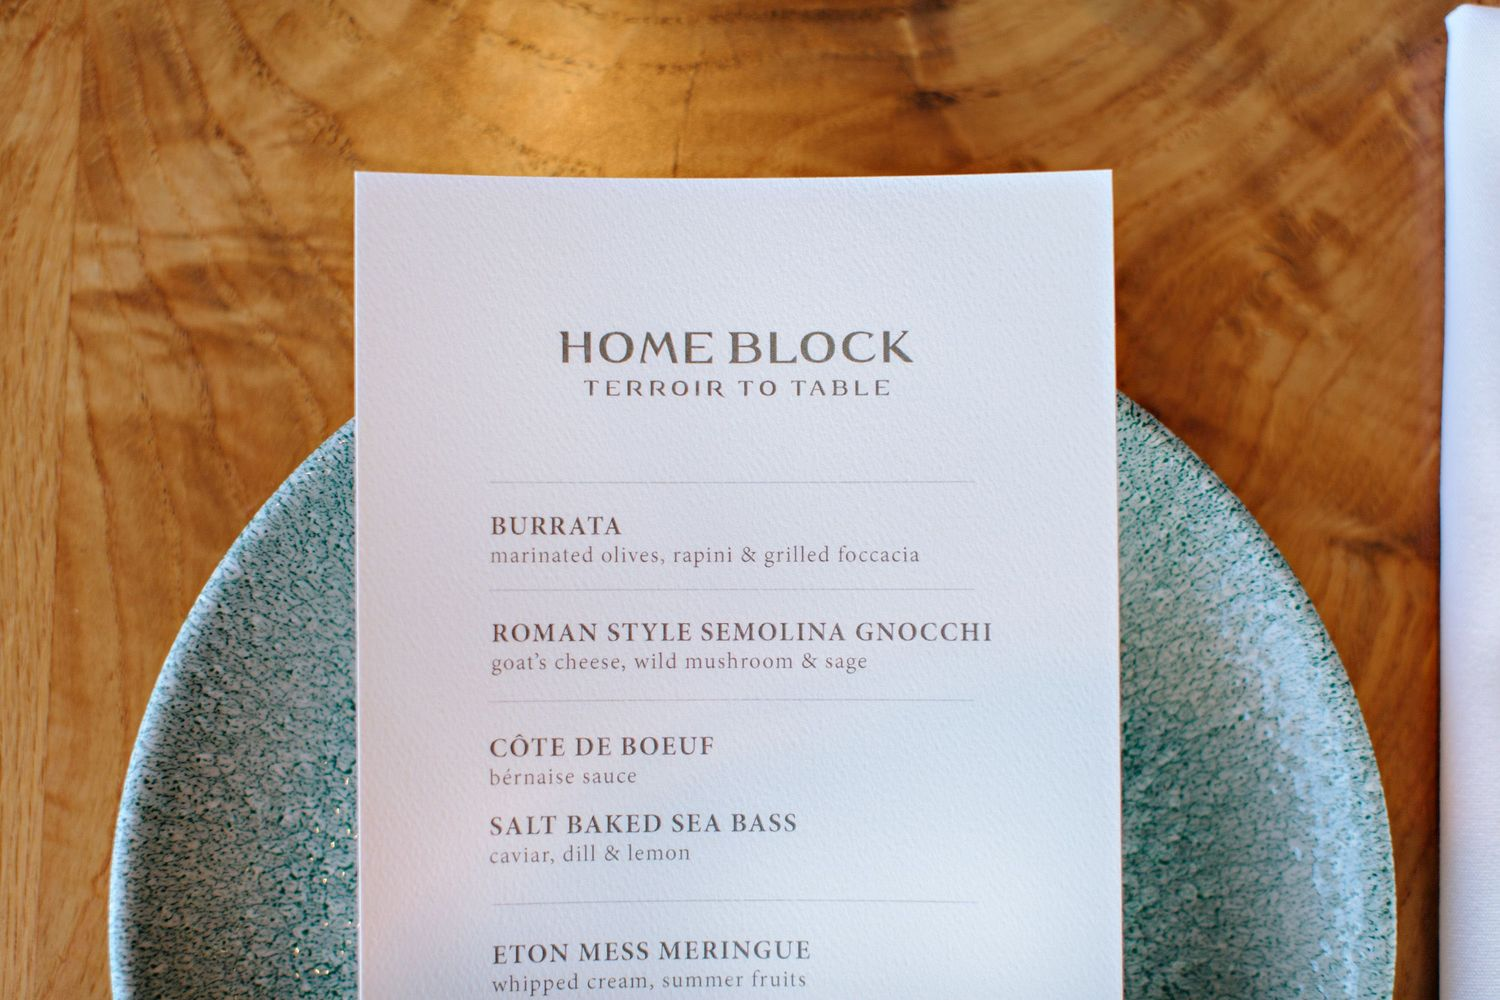 Home Block menu